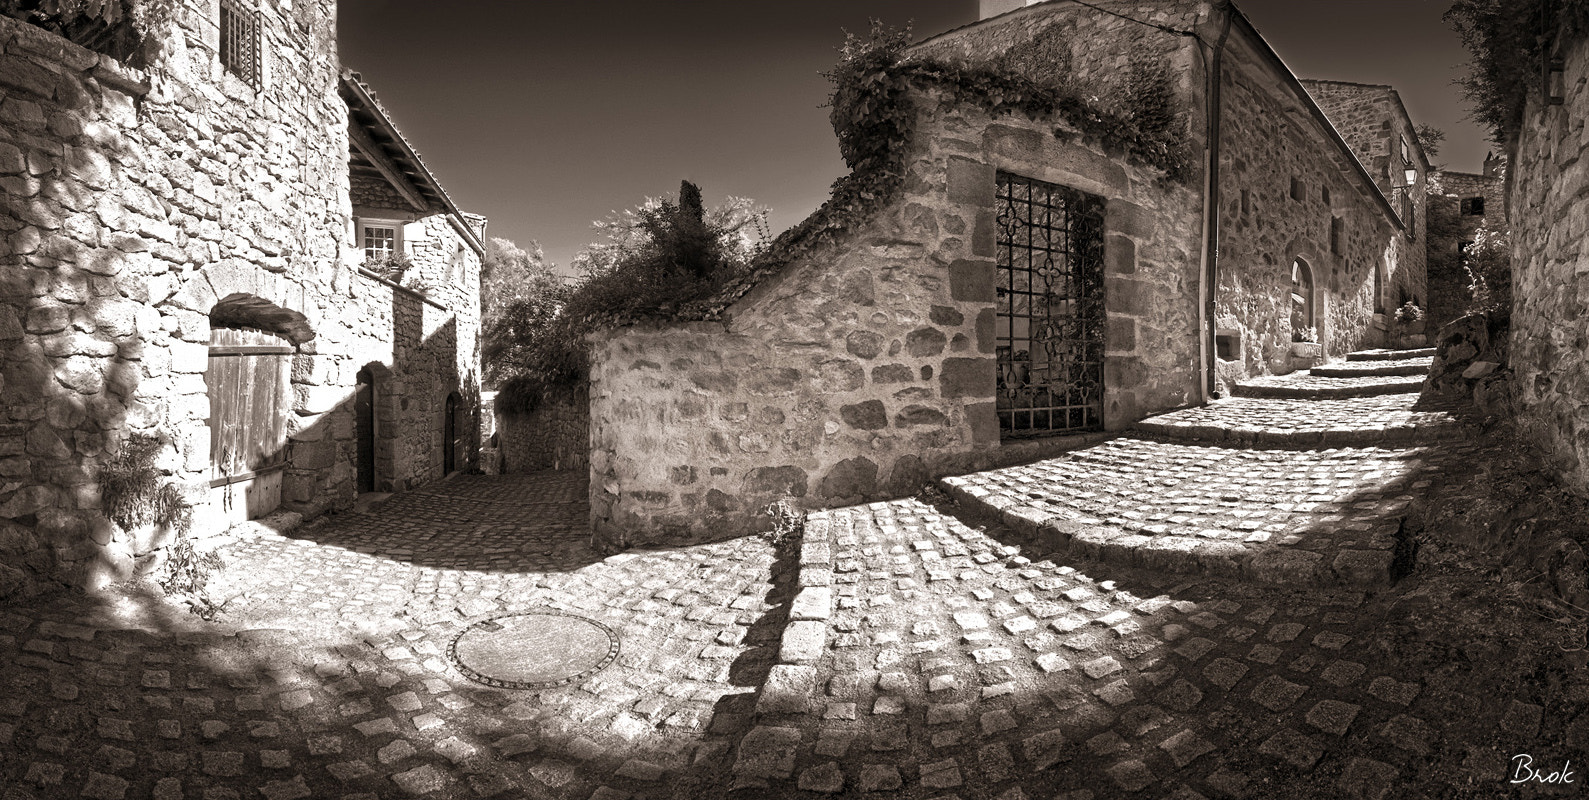 Photograph Memories From Montpeyroux - Act I by BrÖk  on 500px